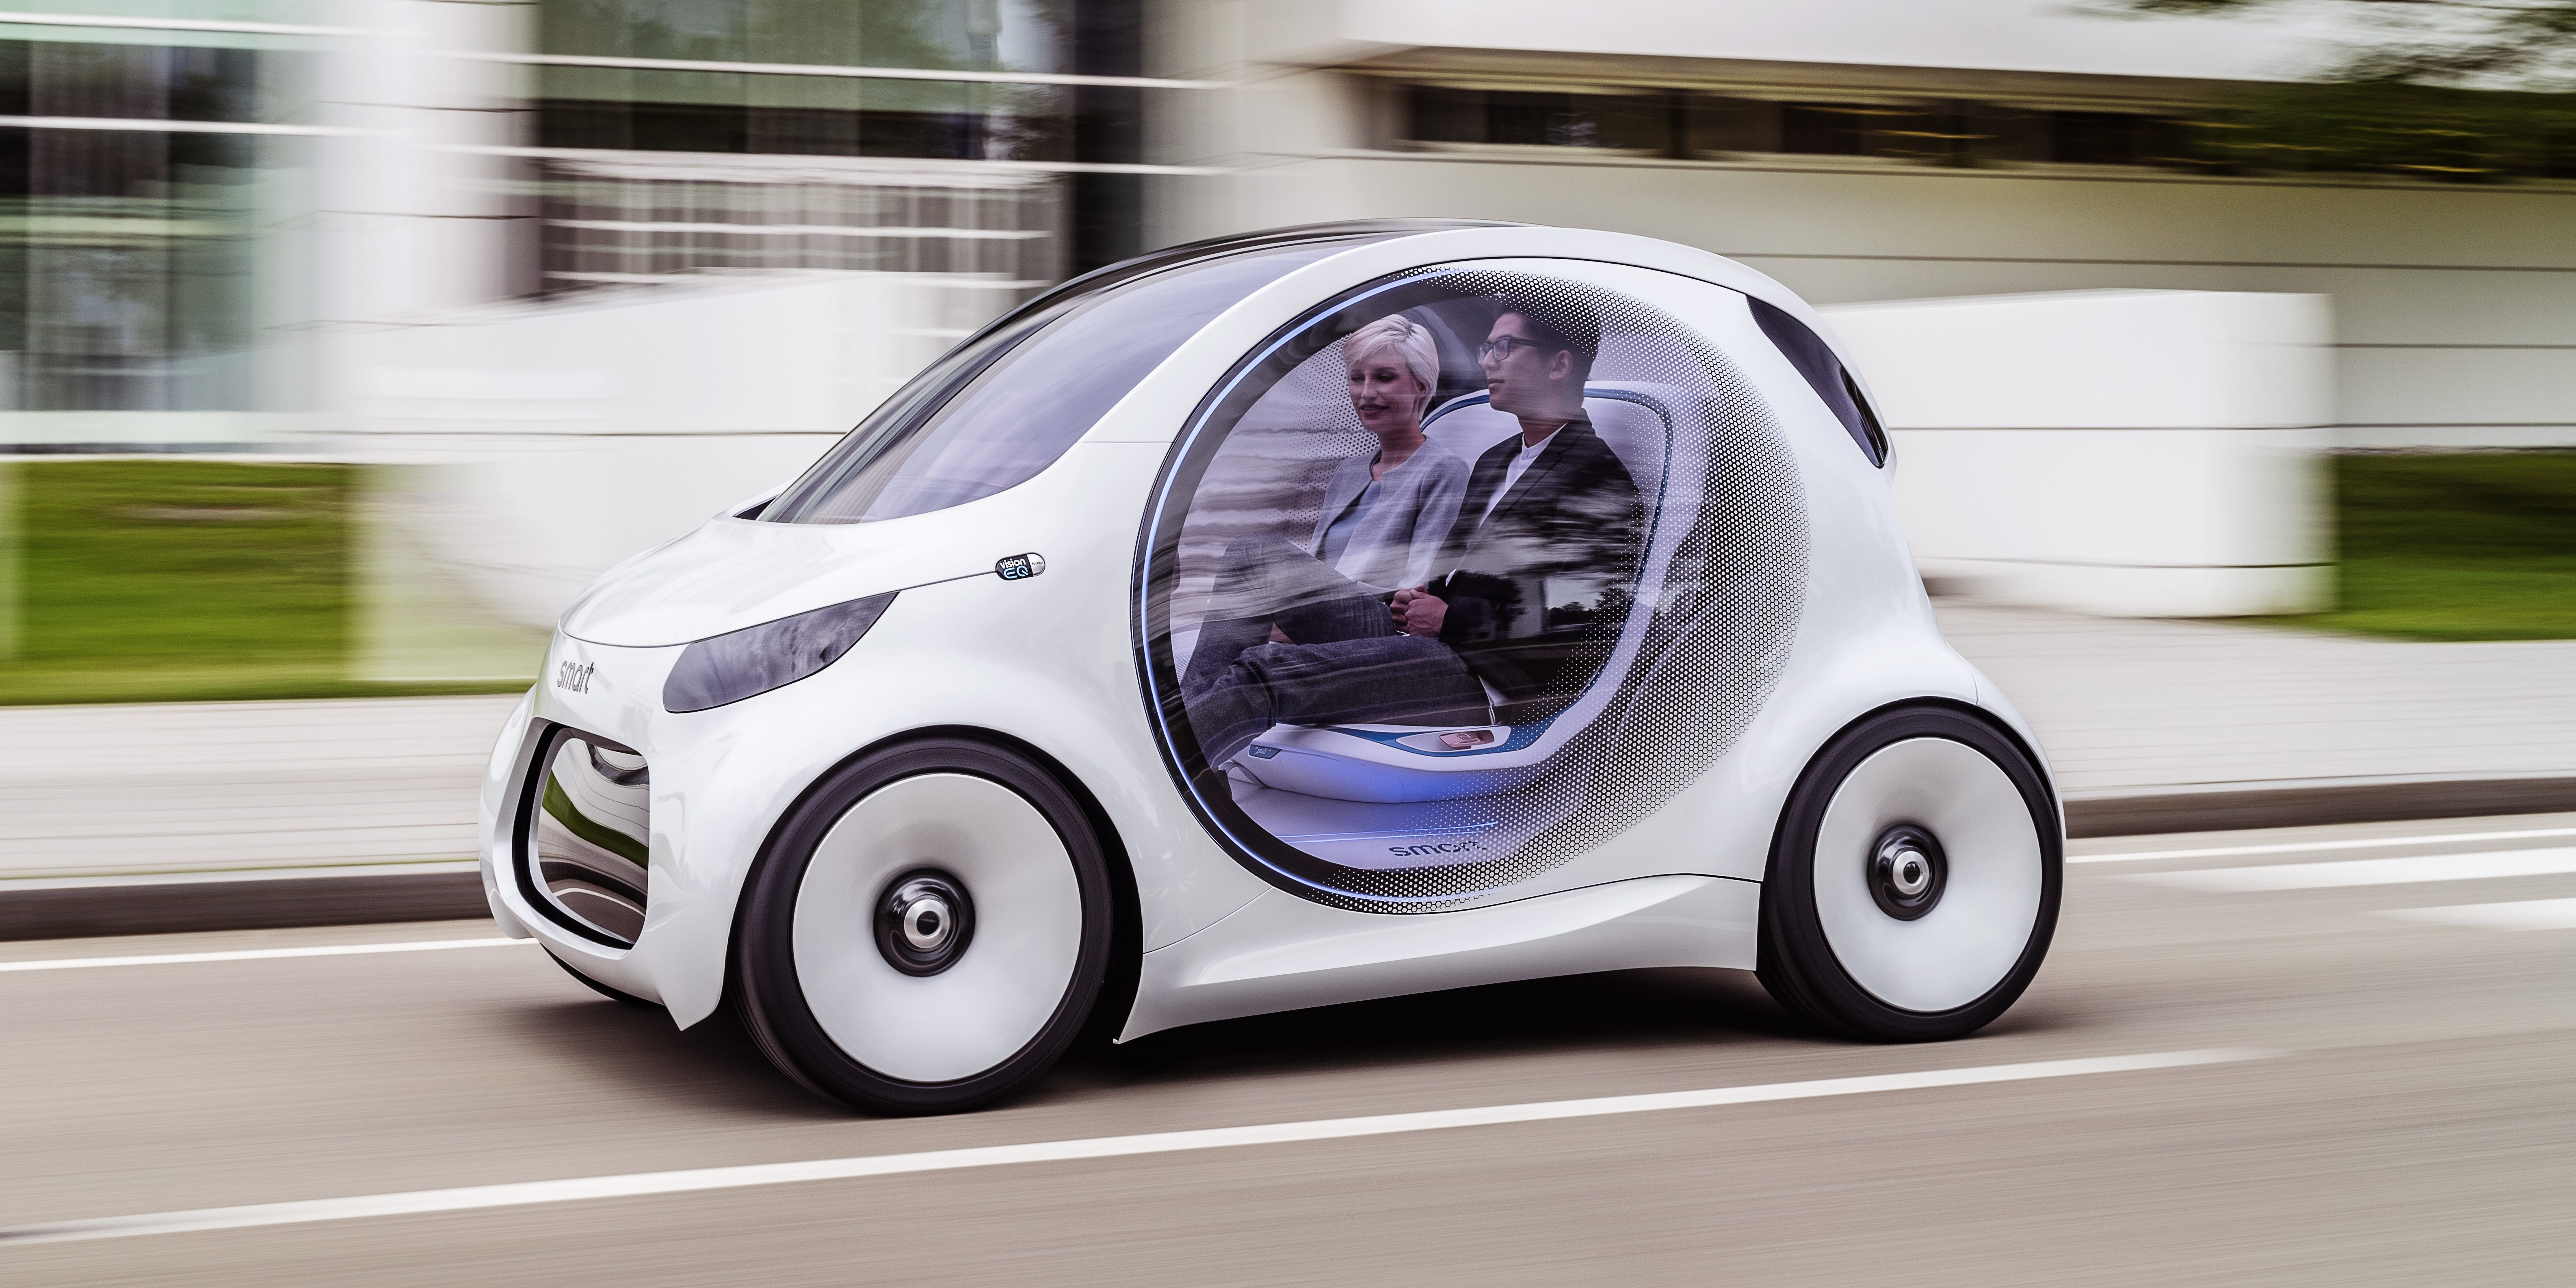 Mercedes unveils a new all-electric and autonomous Smart prototype for ride-sharing